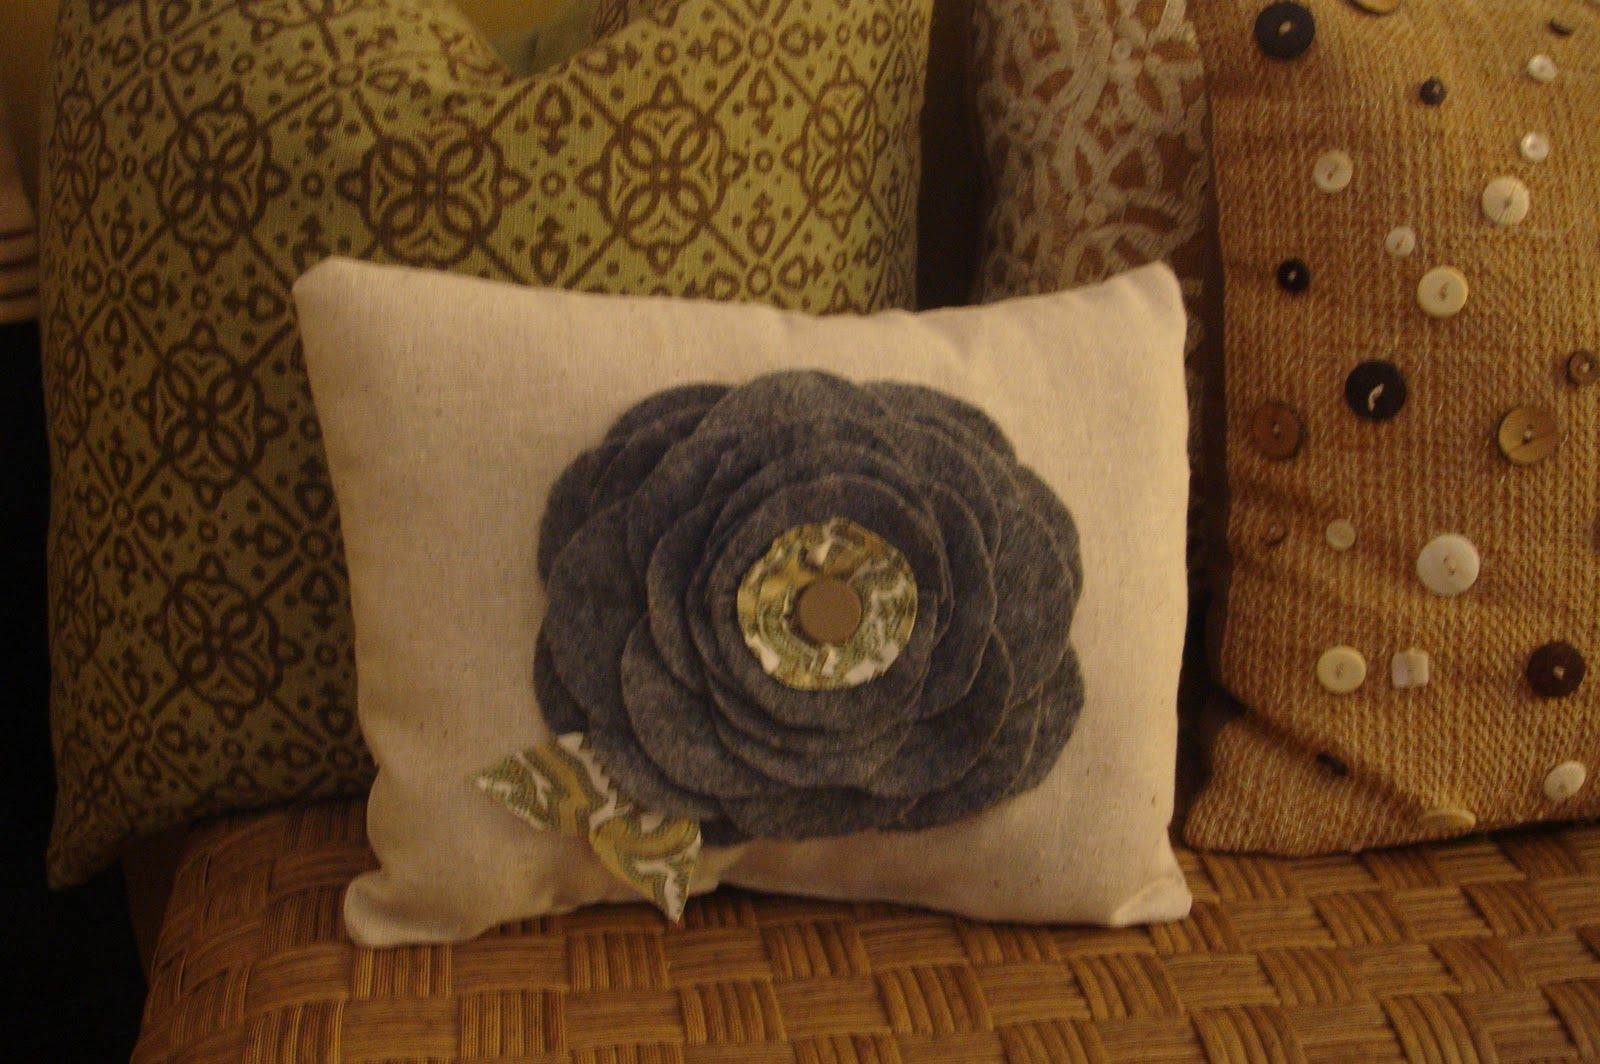 The pillow with buttons, only with my own color scheme.